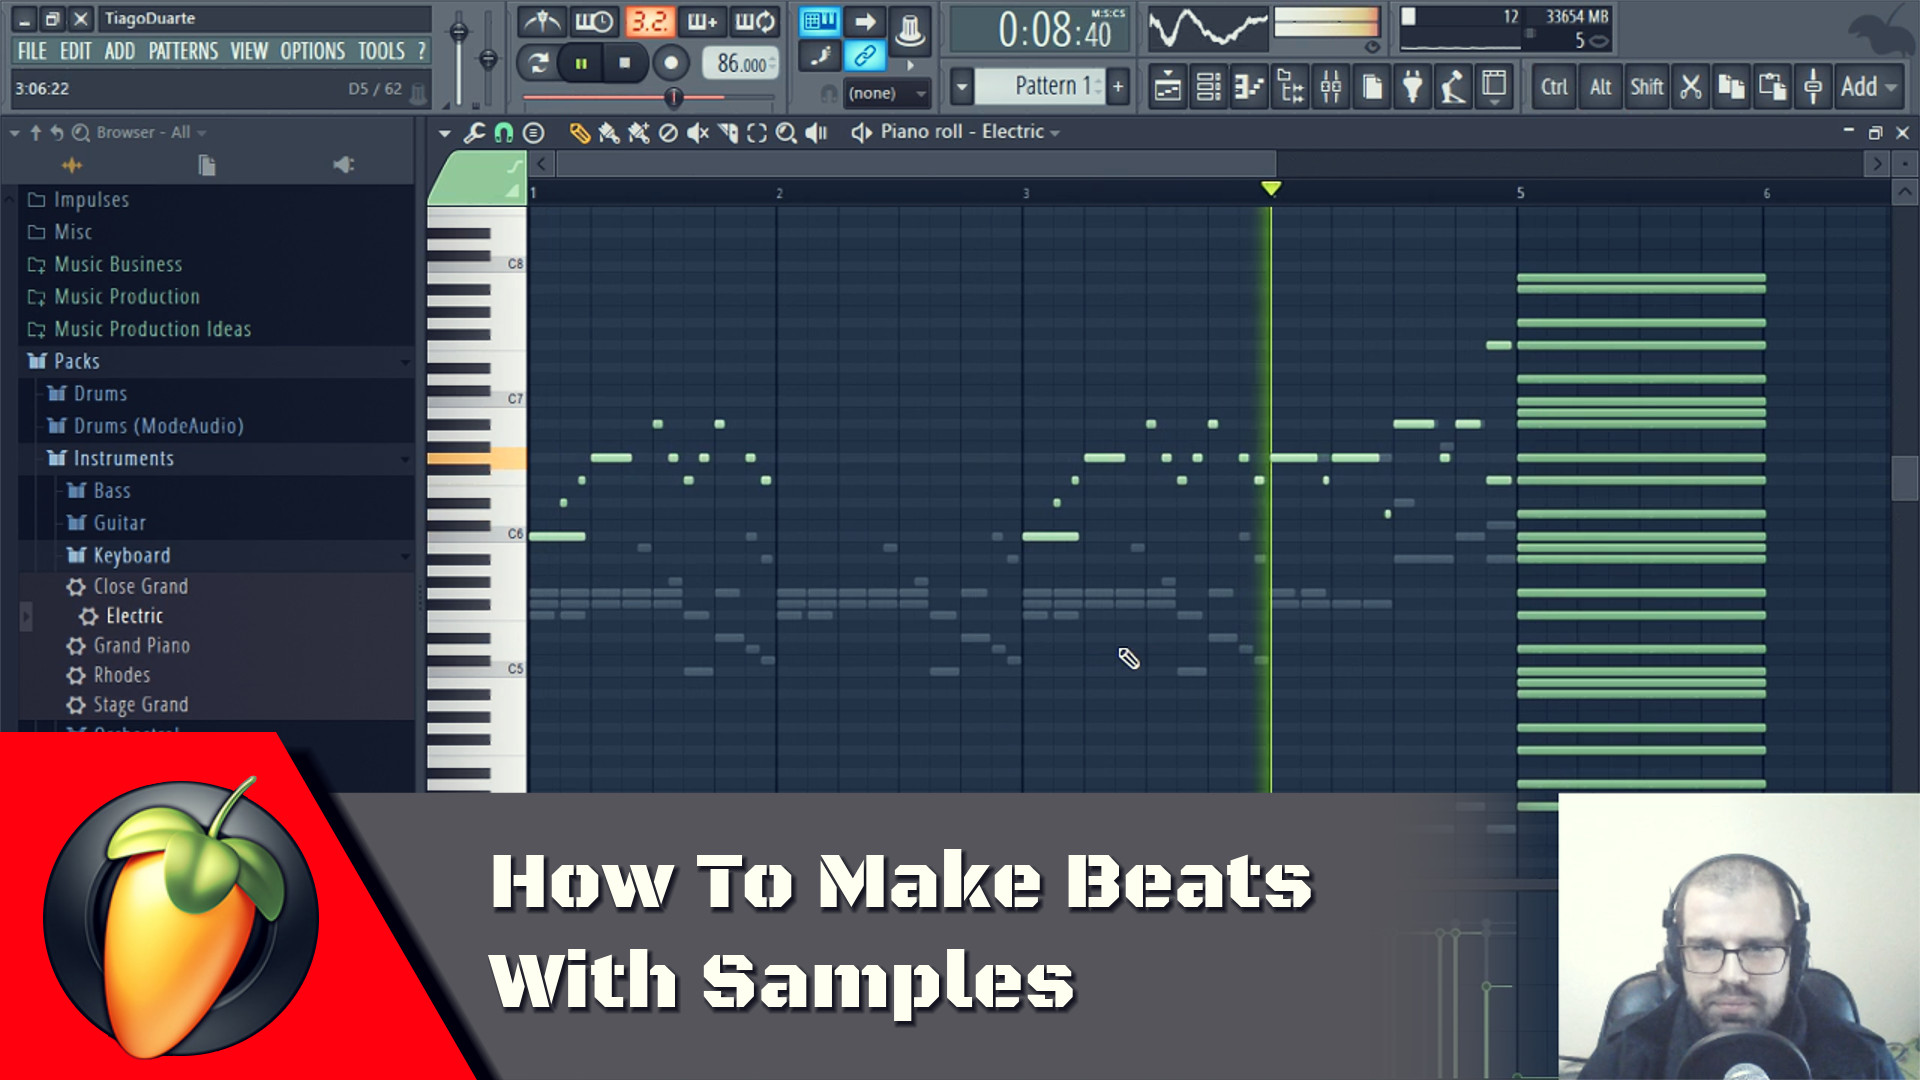 Make Beats With Samples